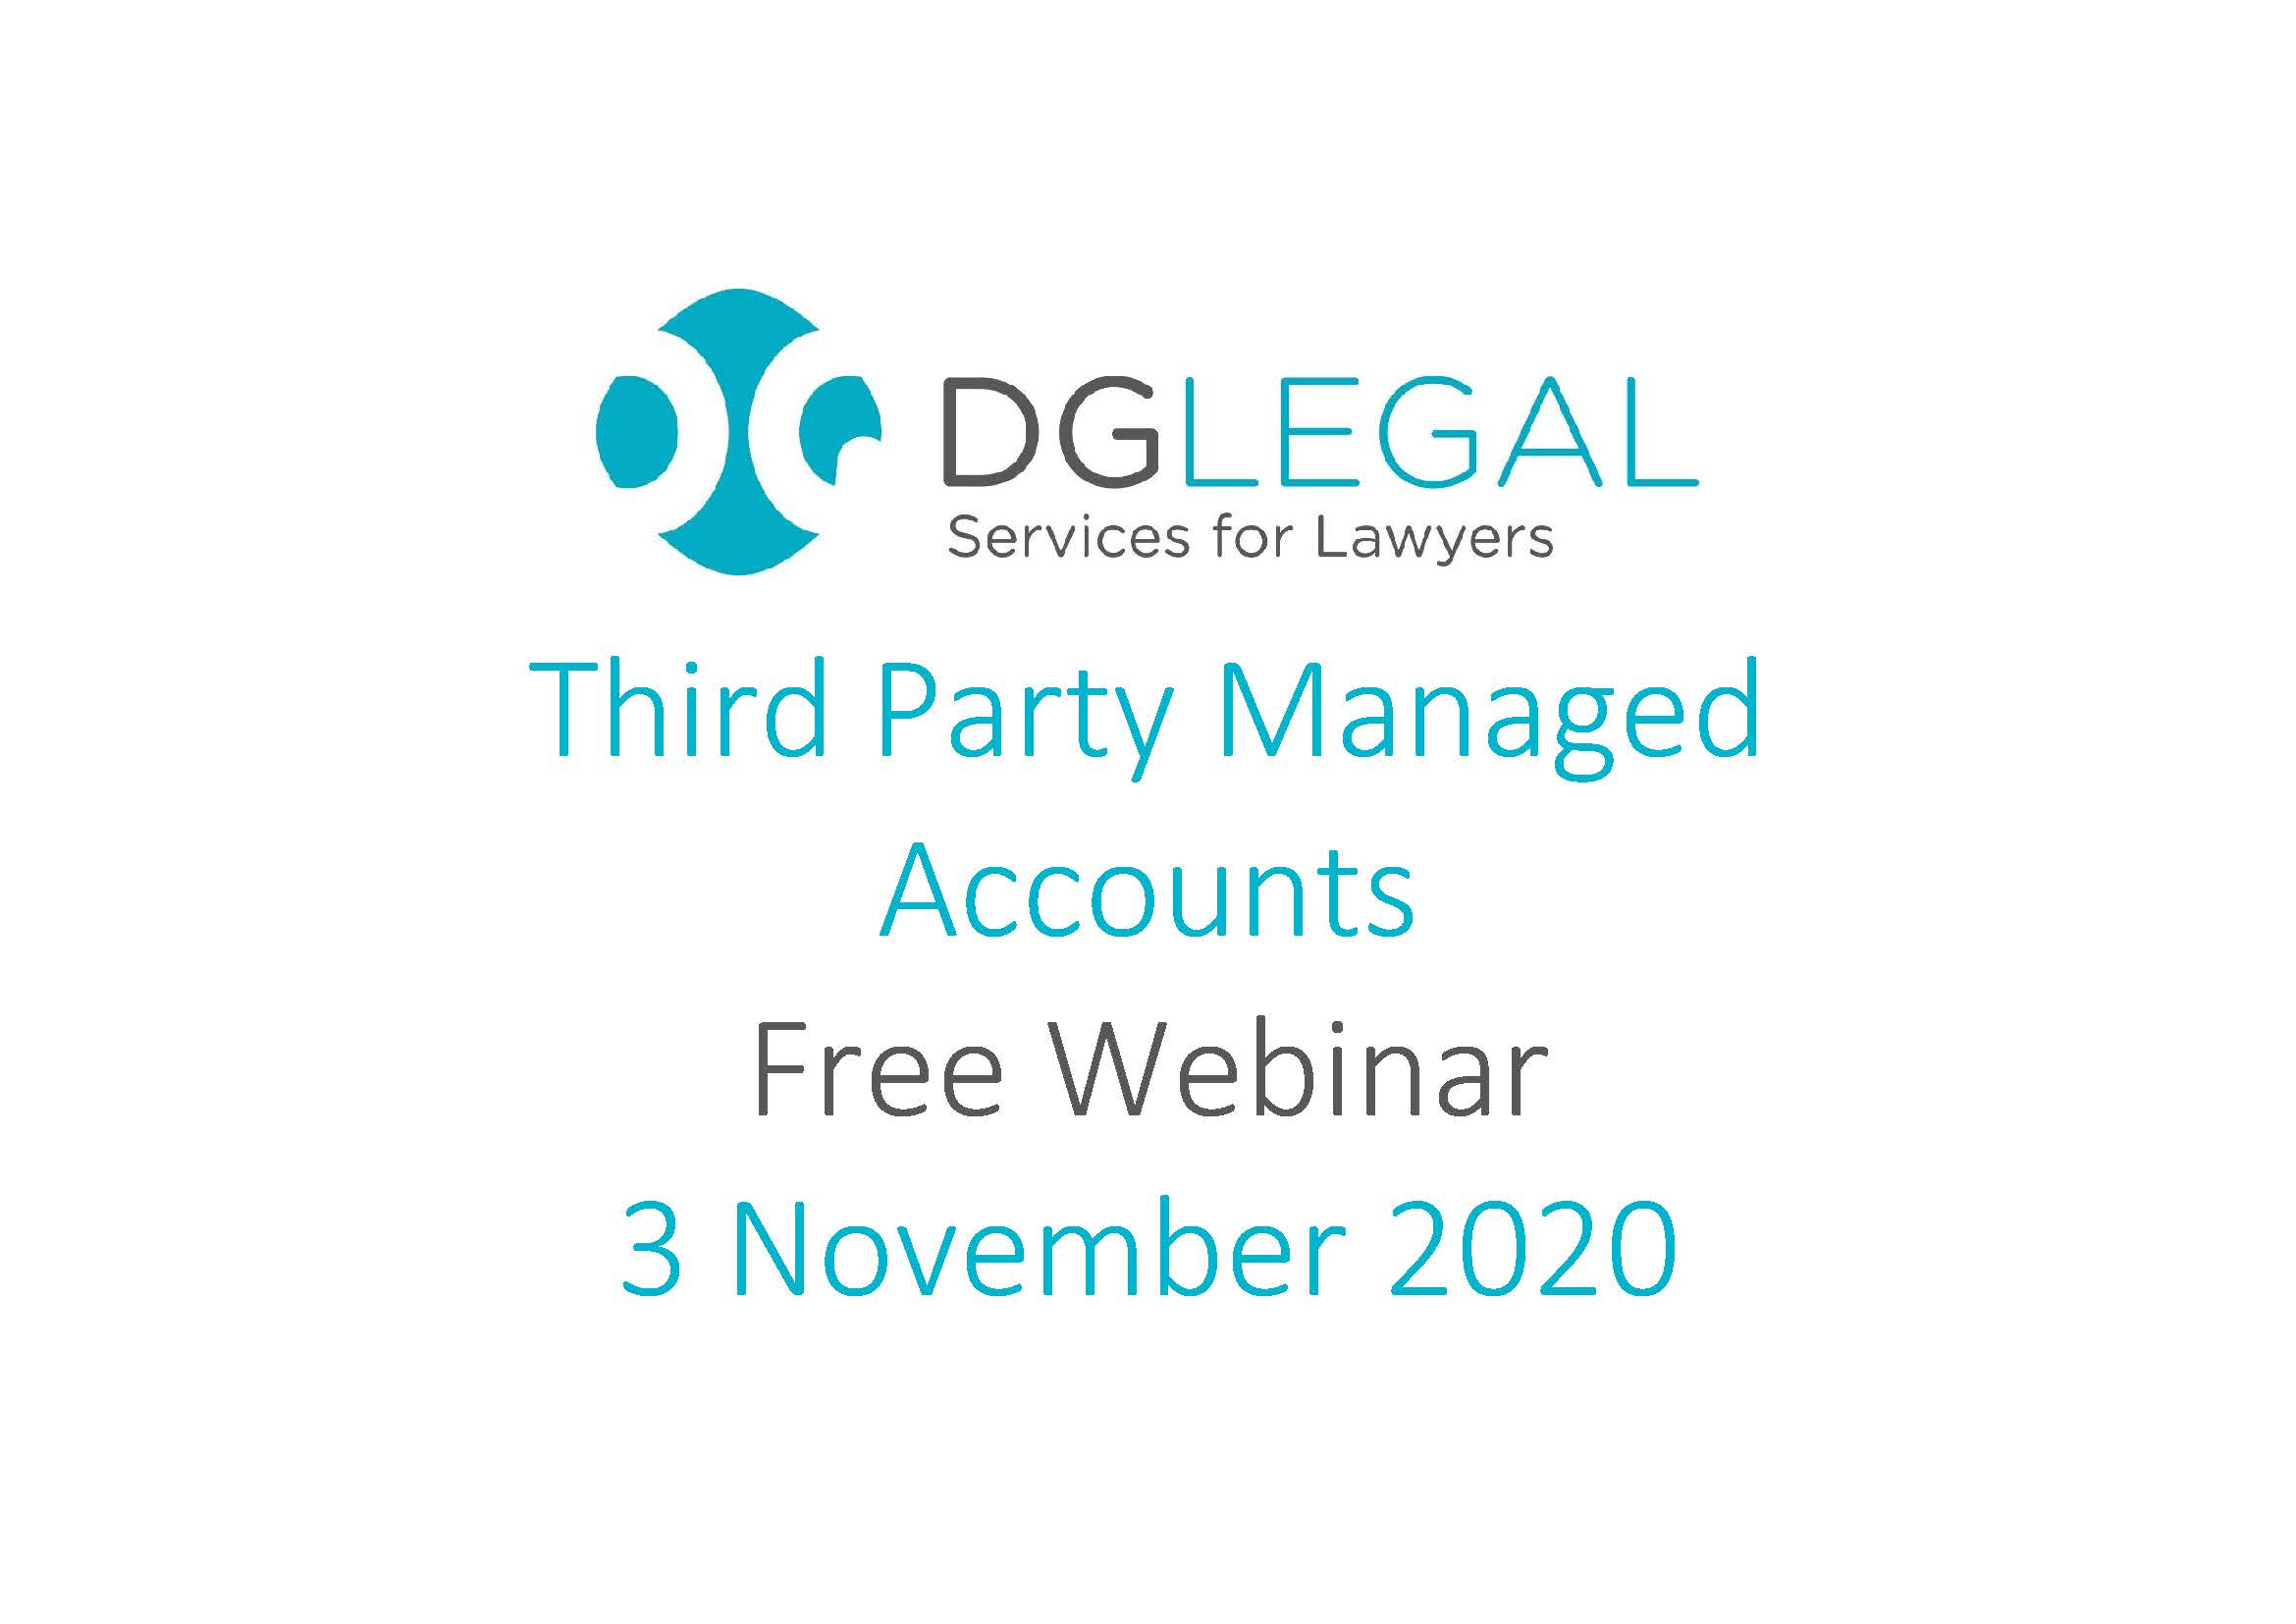 Third Party Managed Accounts Webinar